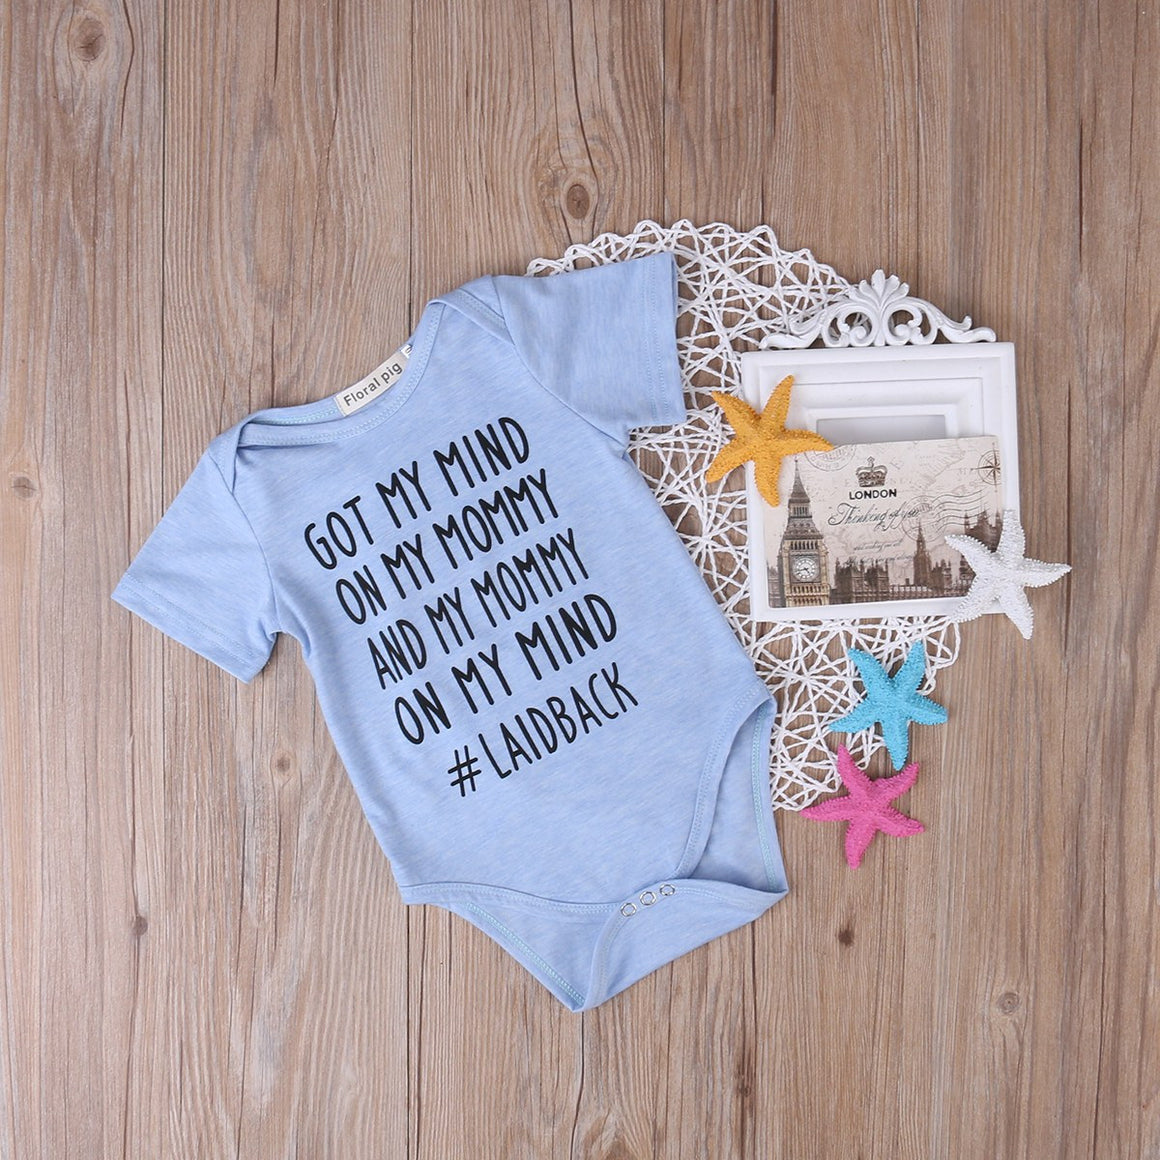 T-shirt - 'Got My Mind On My Mommy' Cotton Bodysuit Onesies